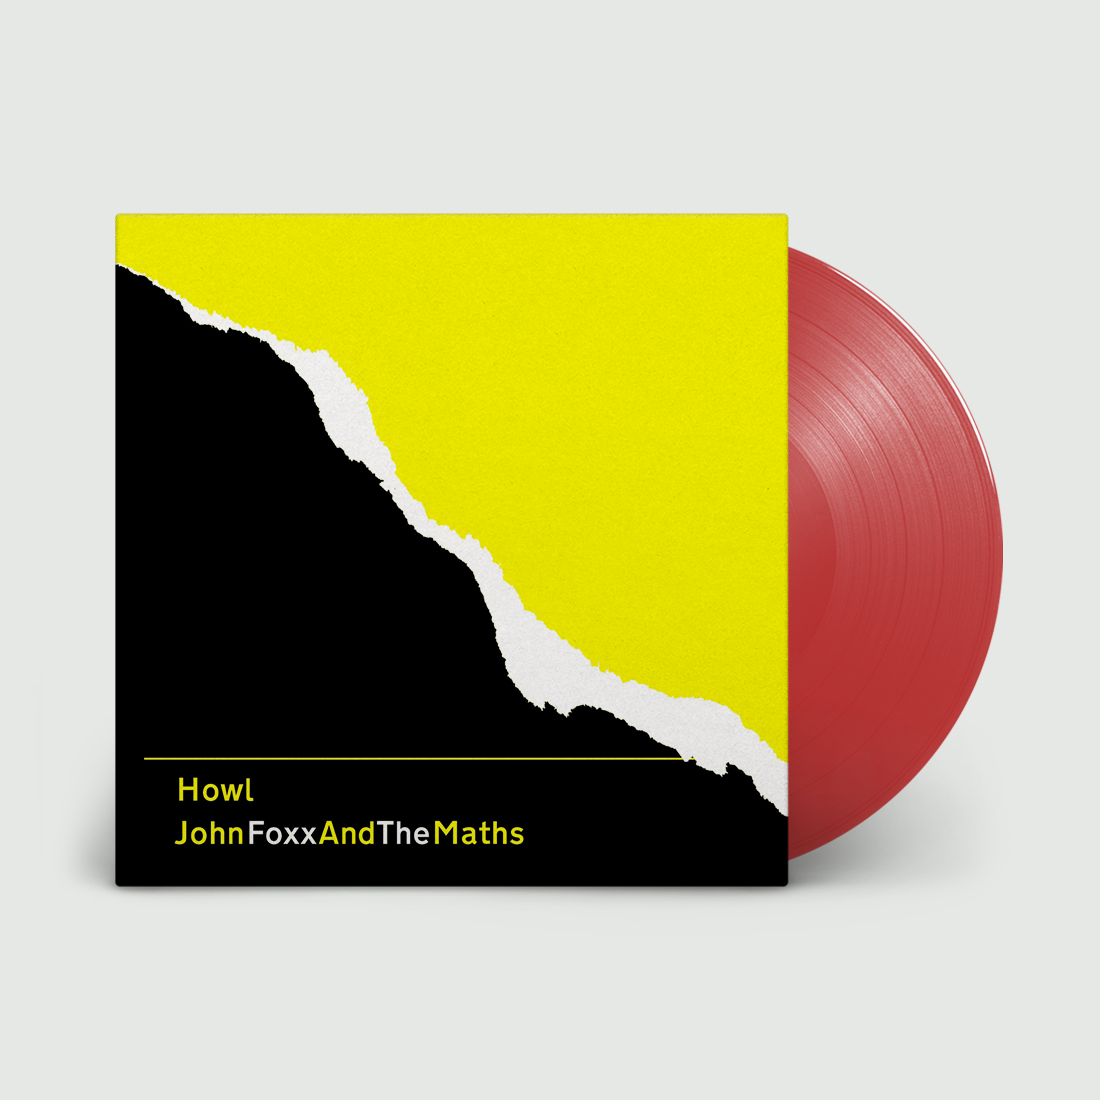 John Foxx and The Maths - Howl Limited Edition Red Vinyl